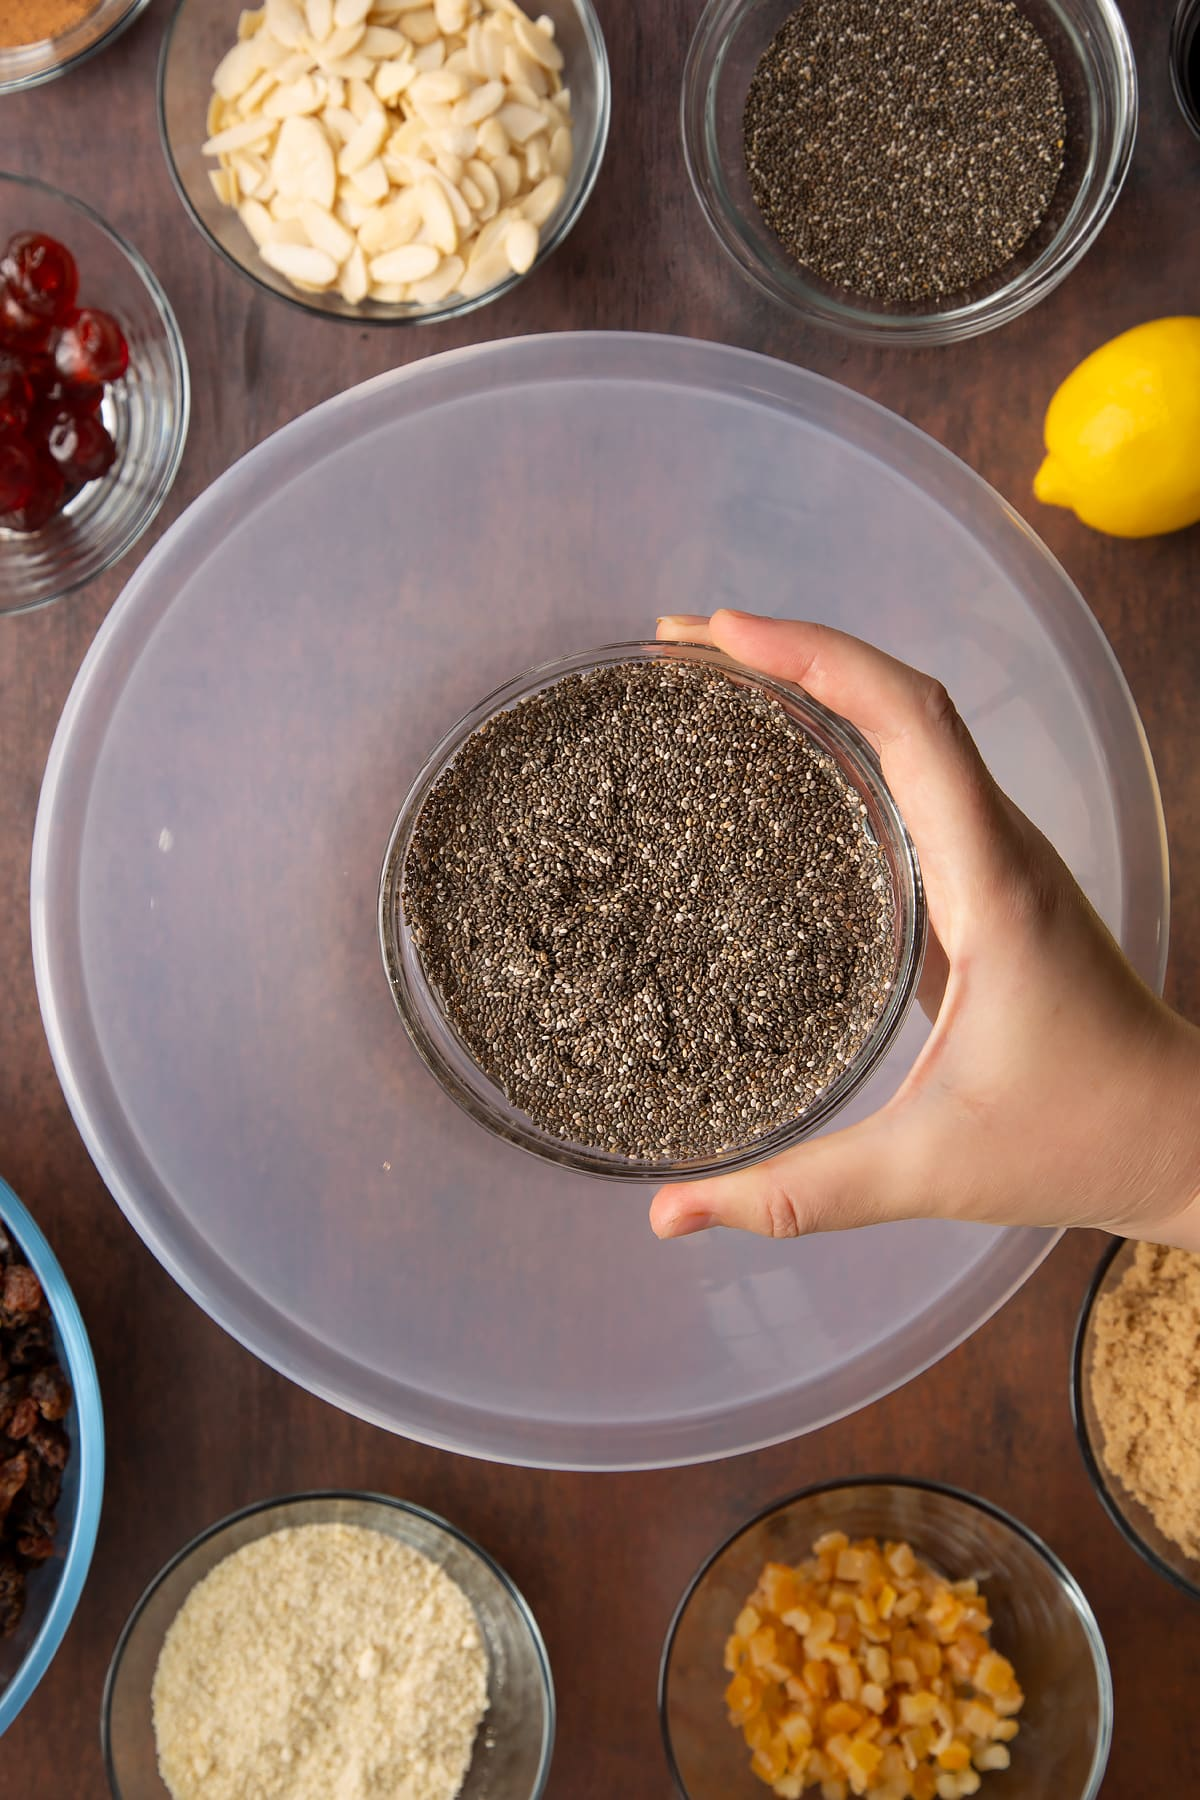 Hand holding a small bowl with chia seeds and water. Beneath is a larger bowl, surrounded by ingredients to make vegan Christmas cake.